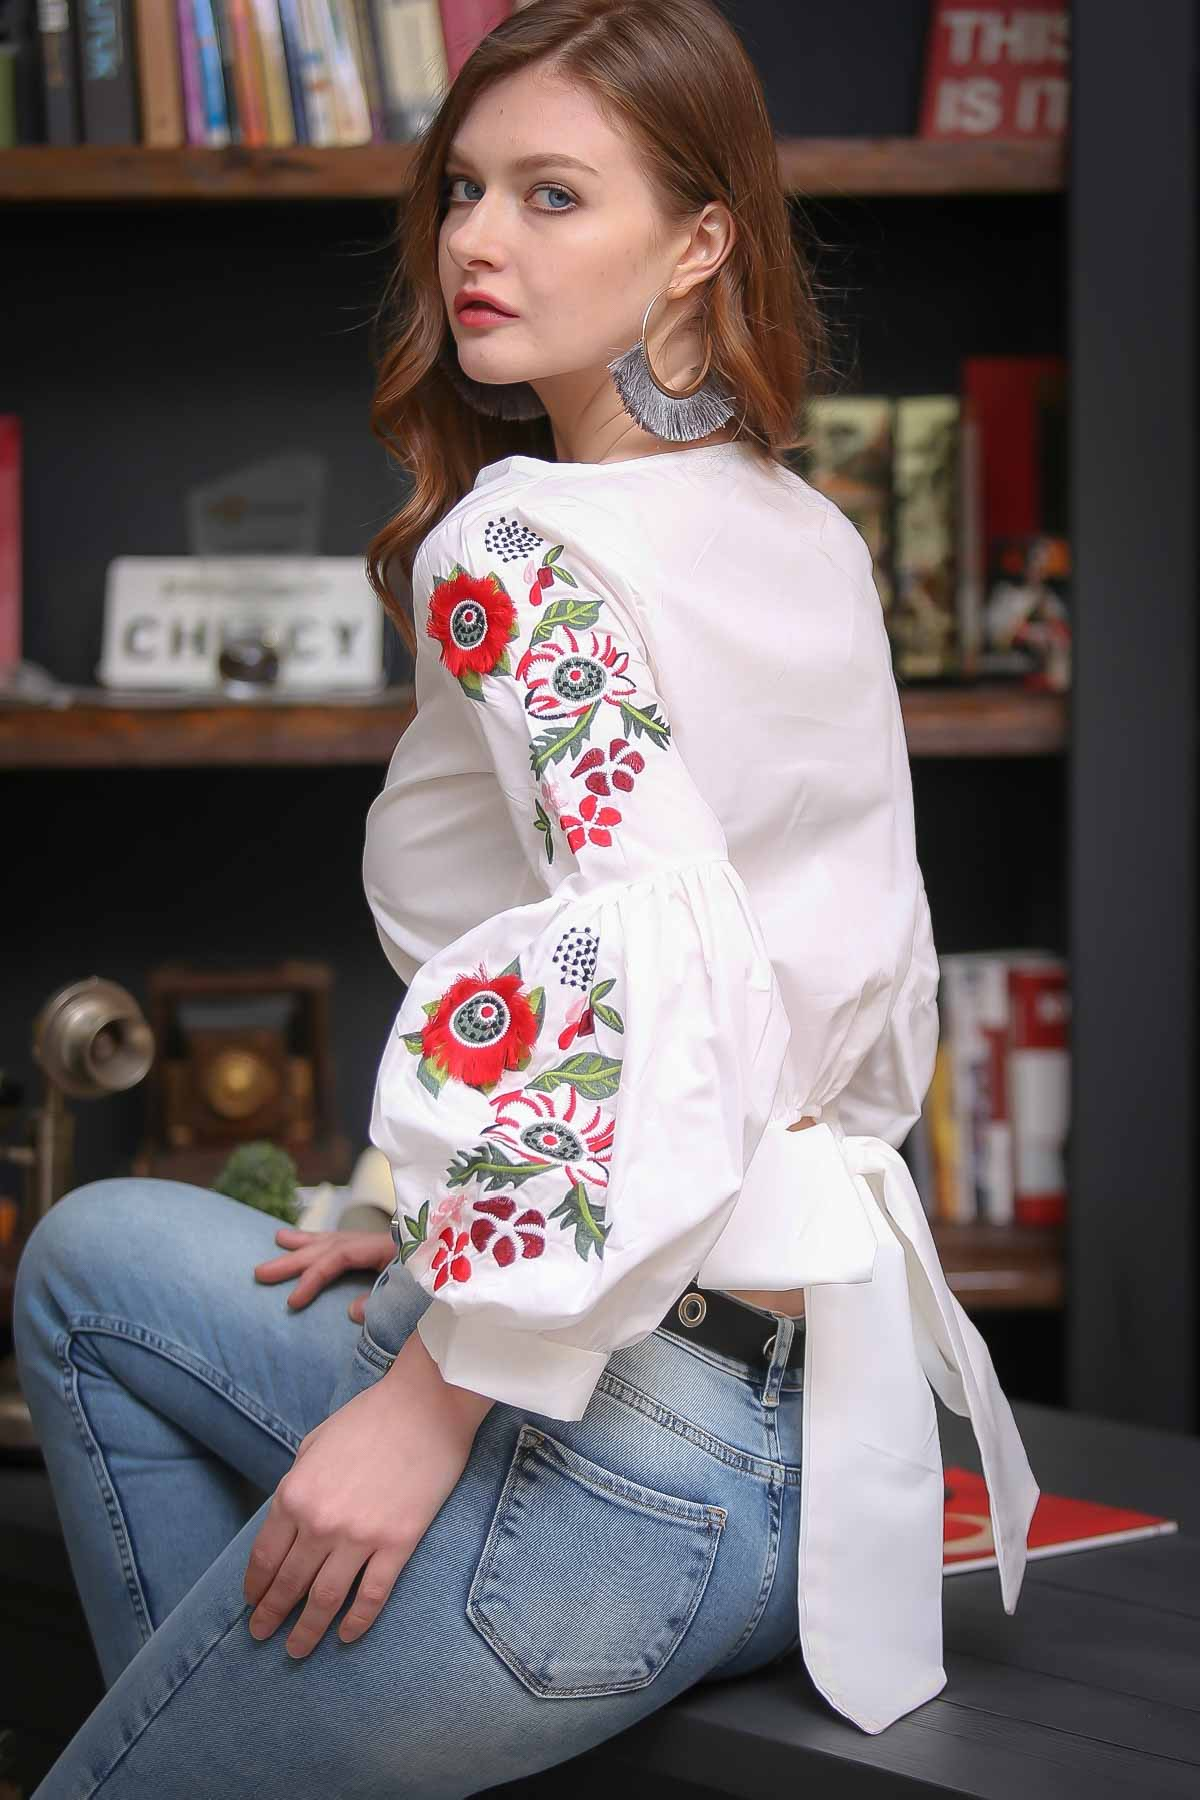 Retro poppies embroidered giant balloon arm connecting bow blouse